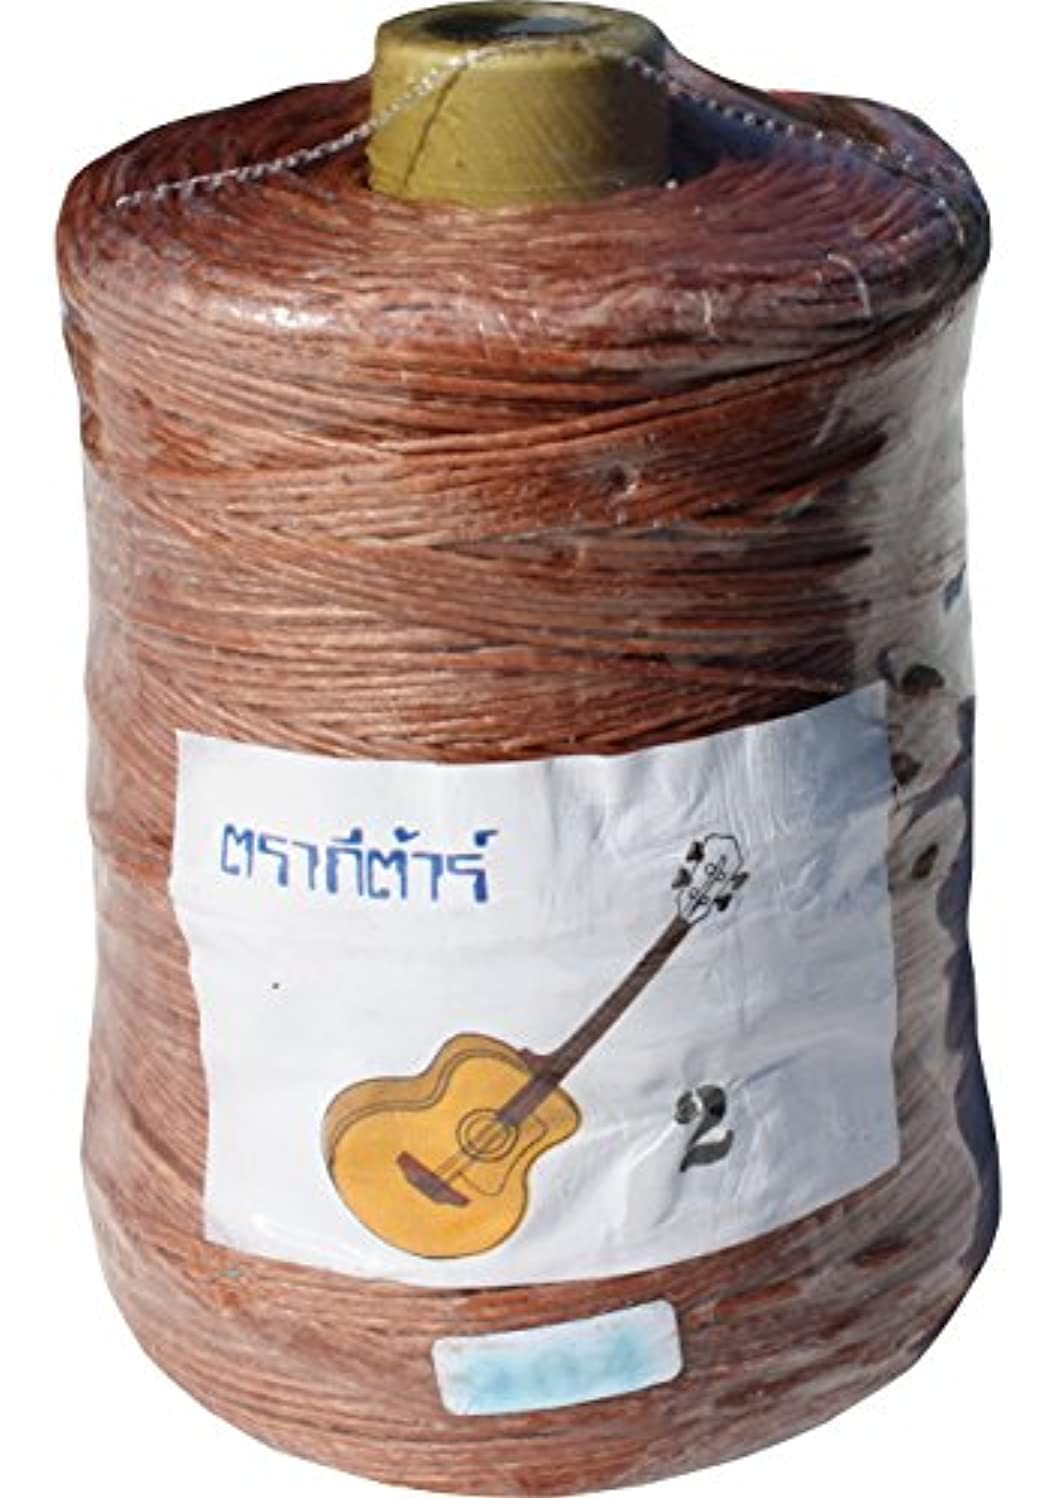 Full Funk Roll of Waxed String for Crafts Bracelets Necklaces Beadwork 450Gms, Light Brown